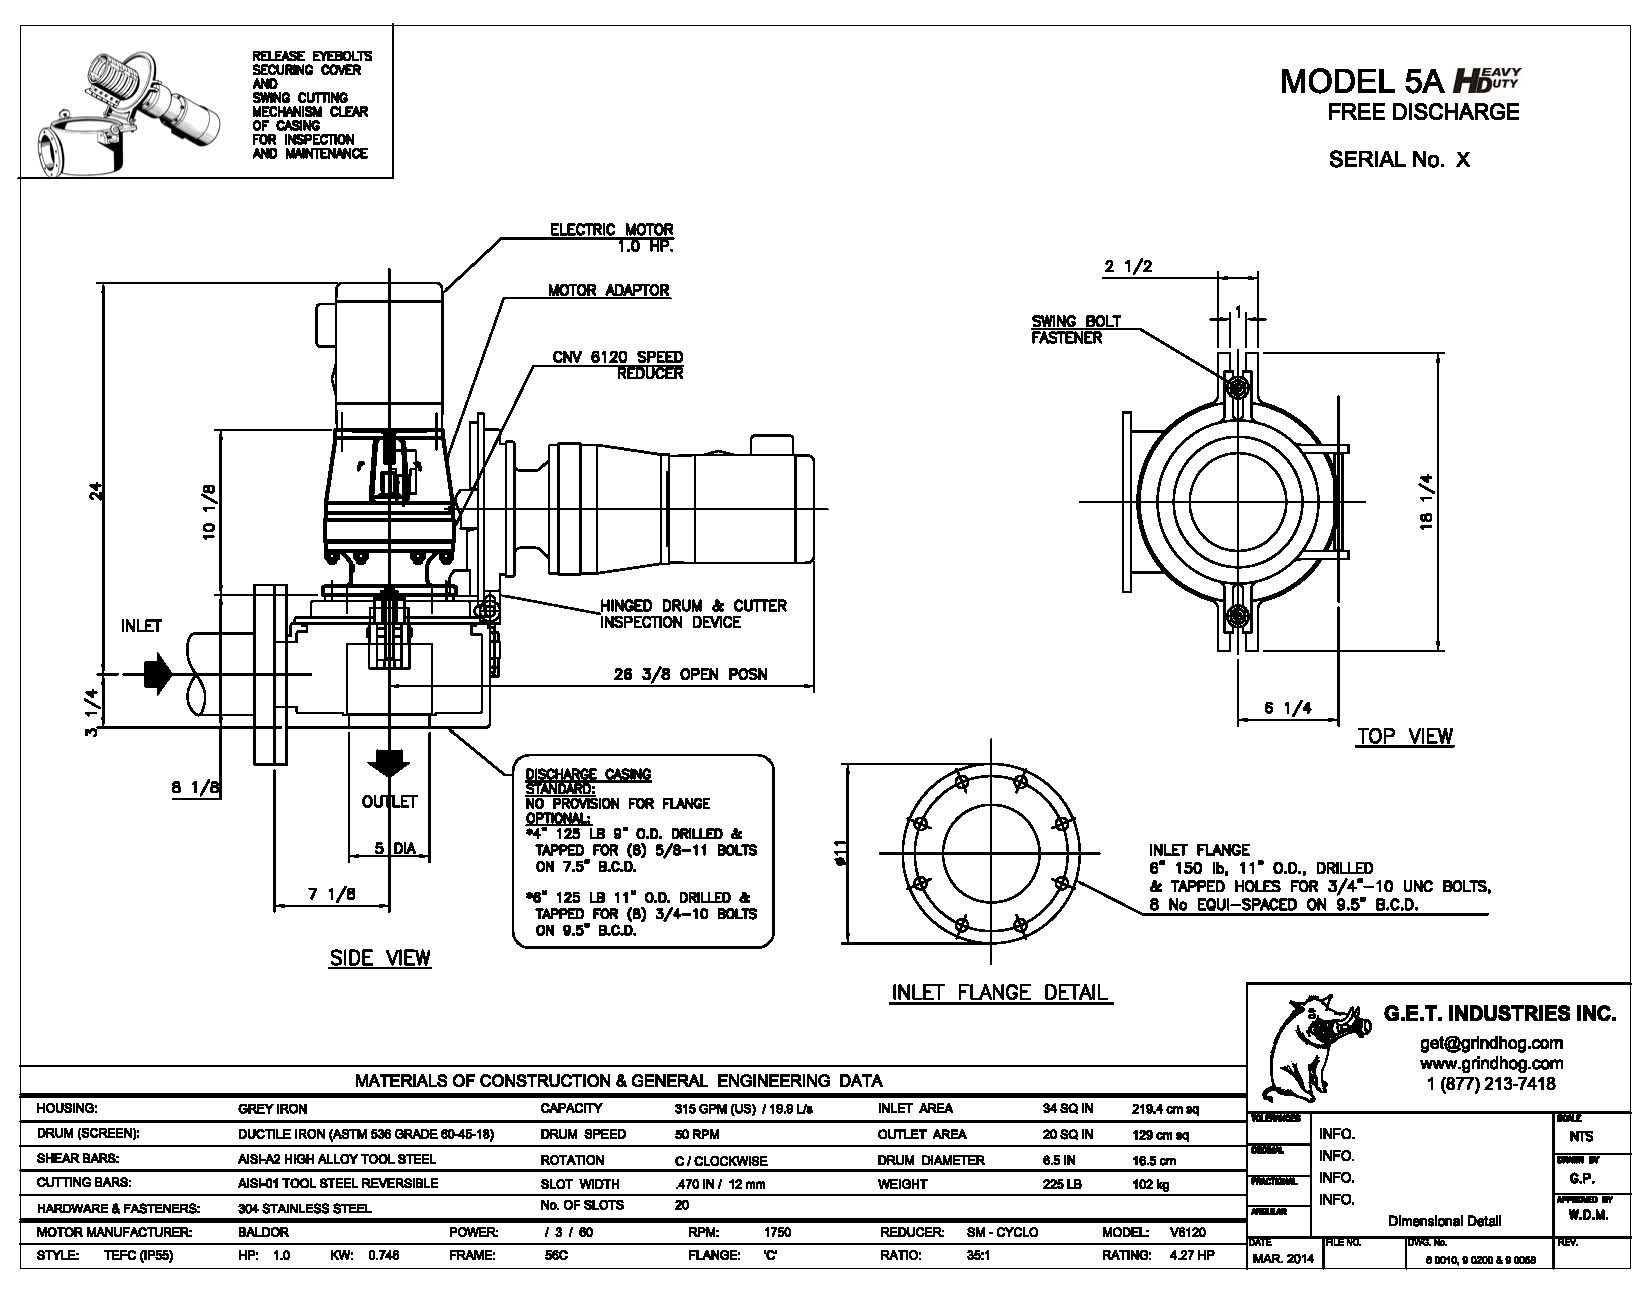 data drawing for Model 5A